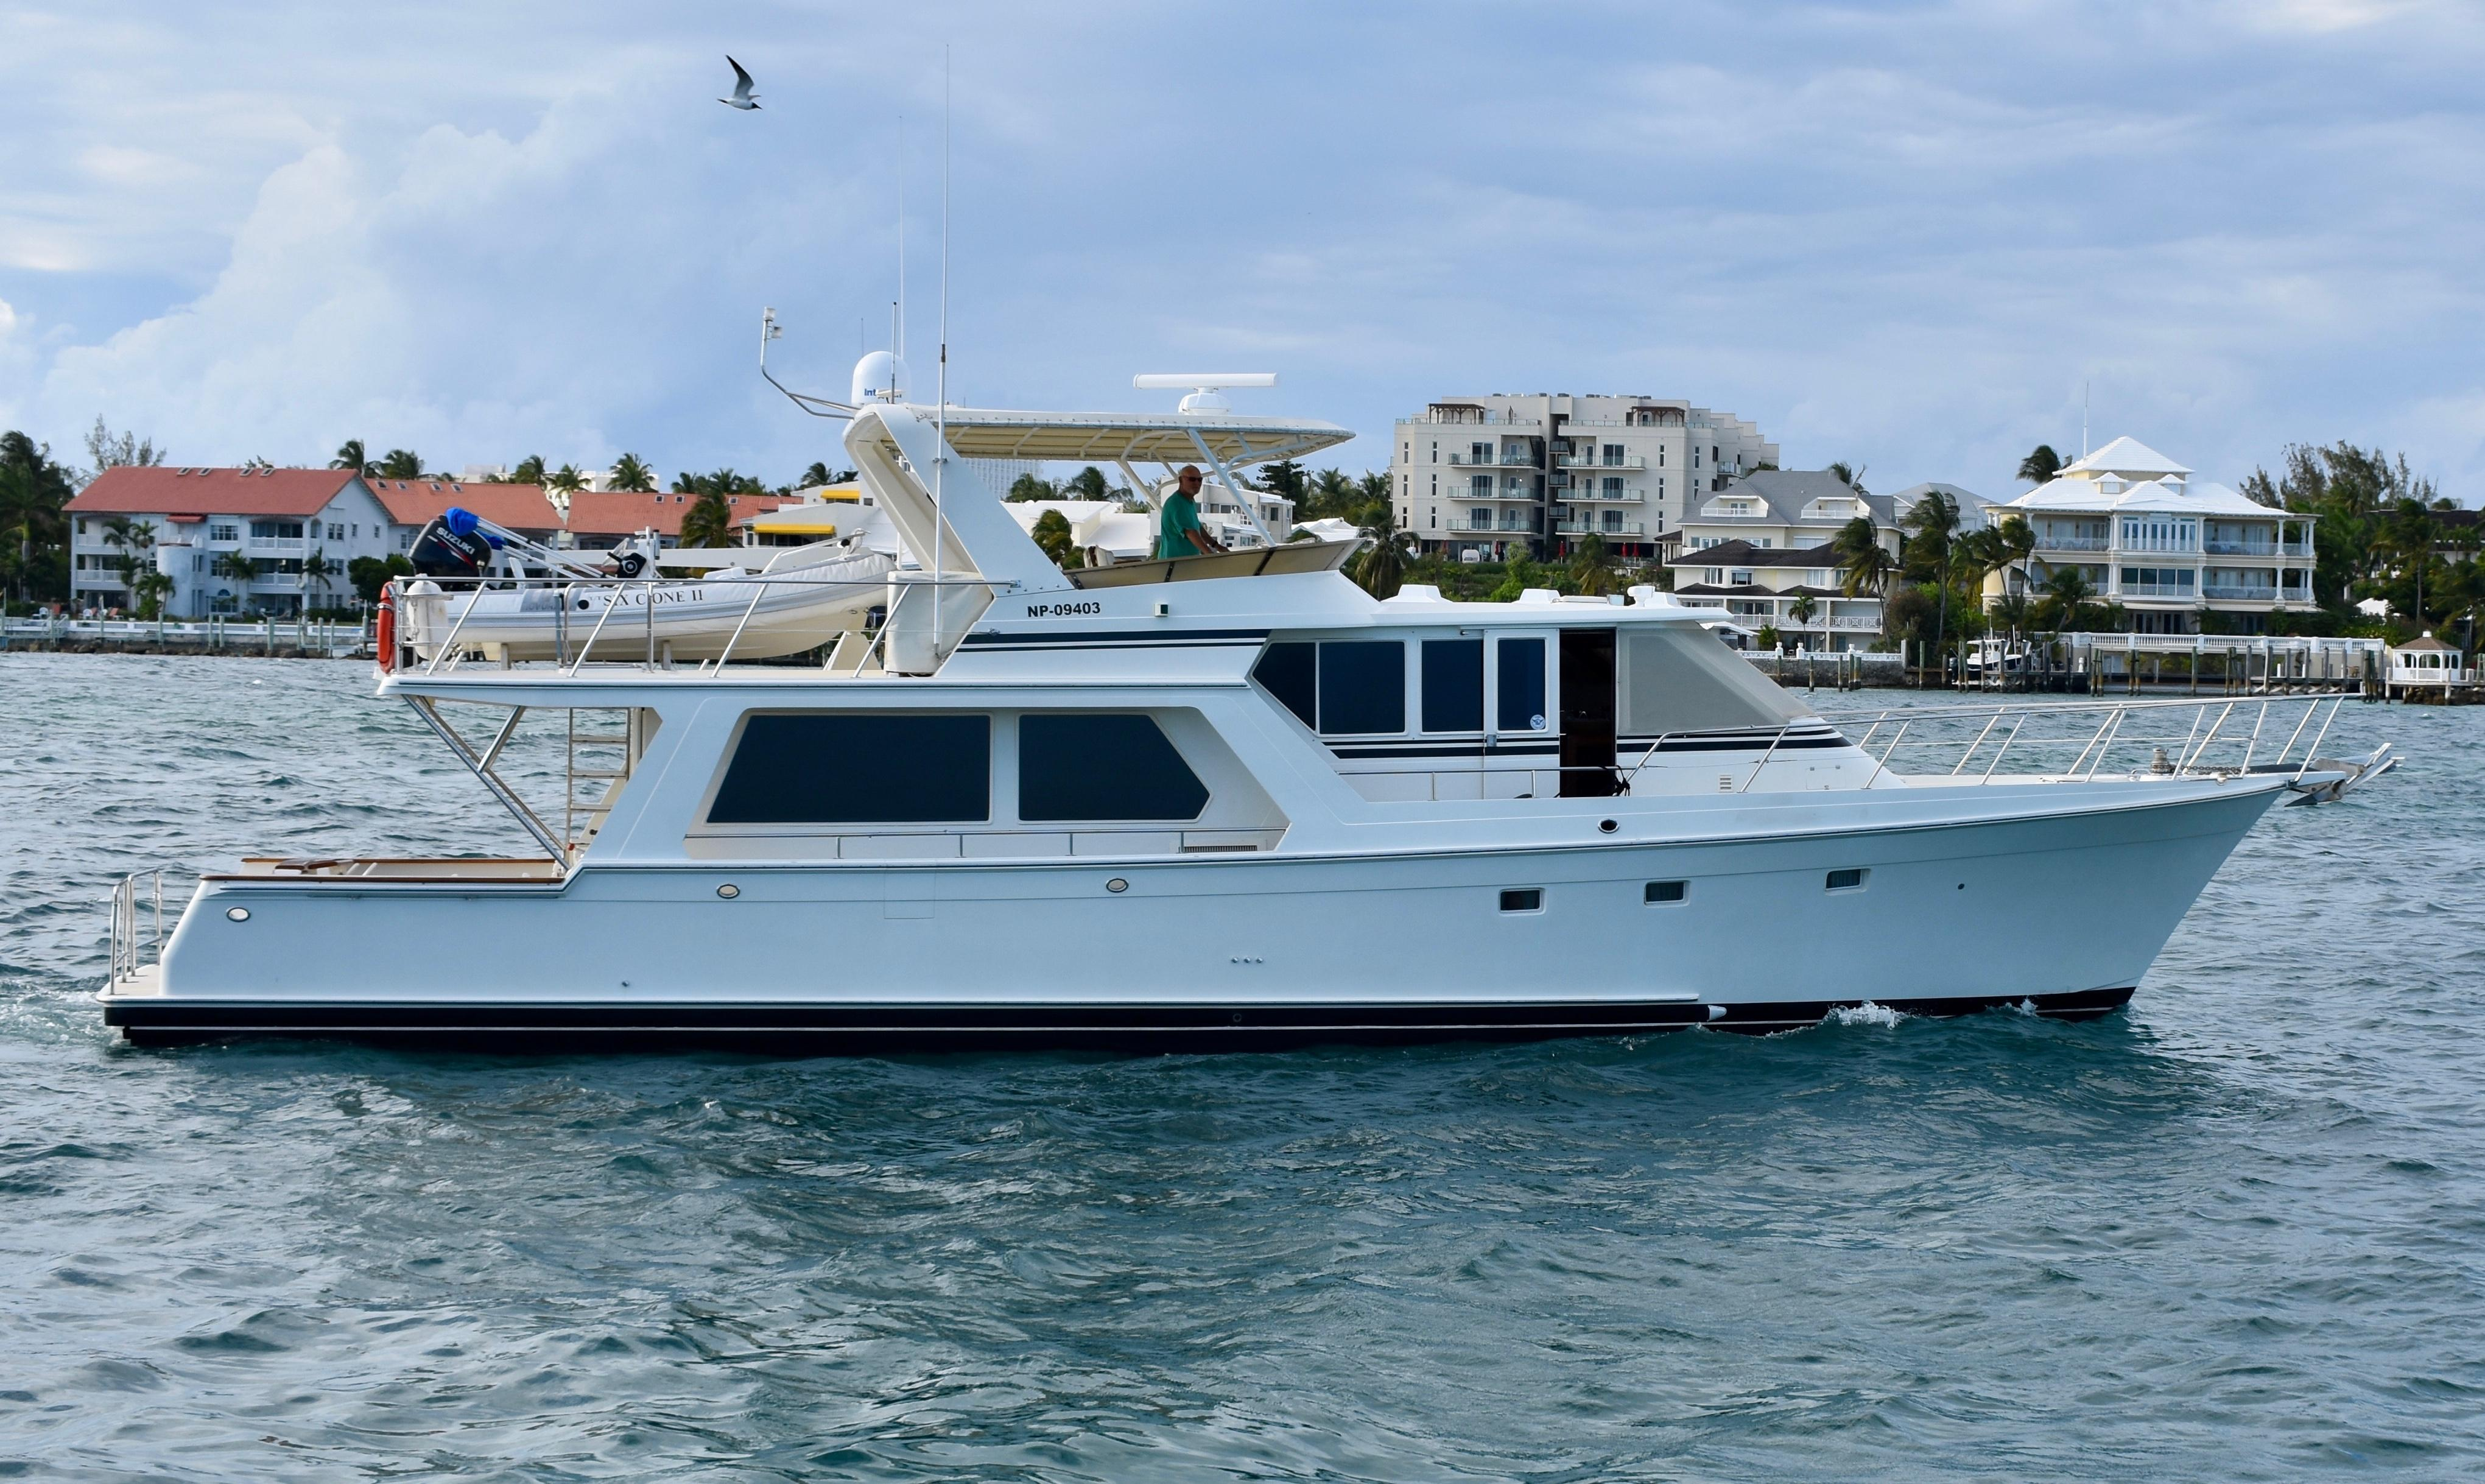 62' Offshore 2000